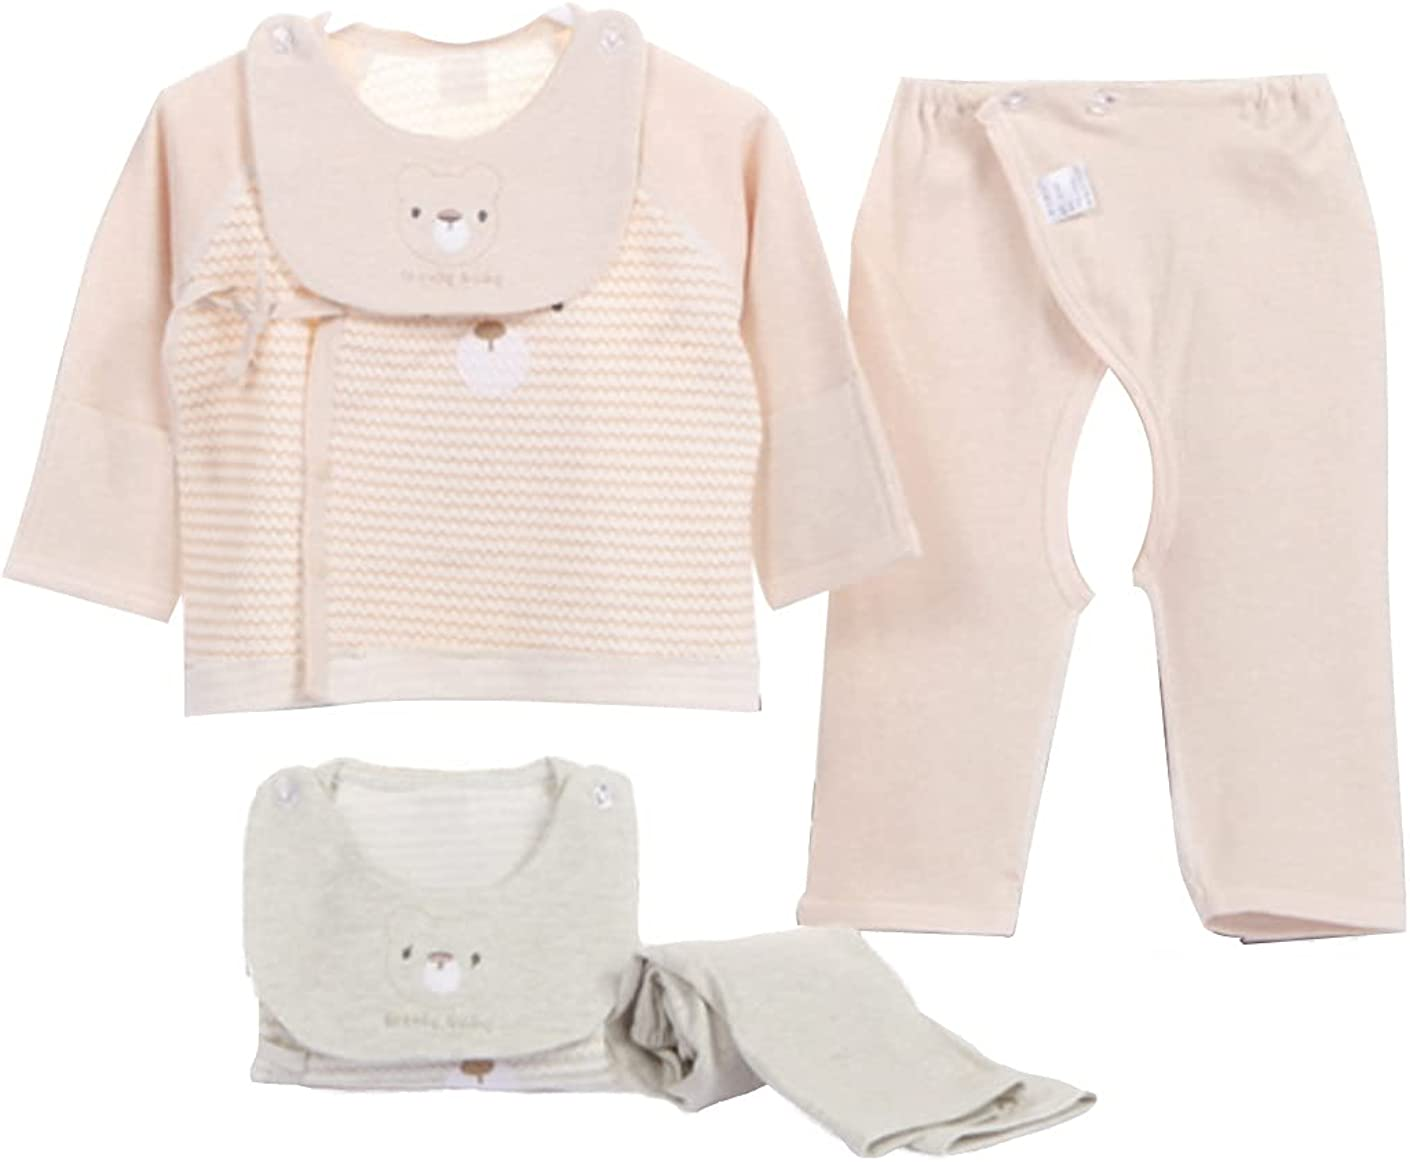 Unisex Baby Natural Coloured Organic Cotton Long-Sleeve Clothes No Fluorescer No Chemical Dye